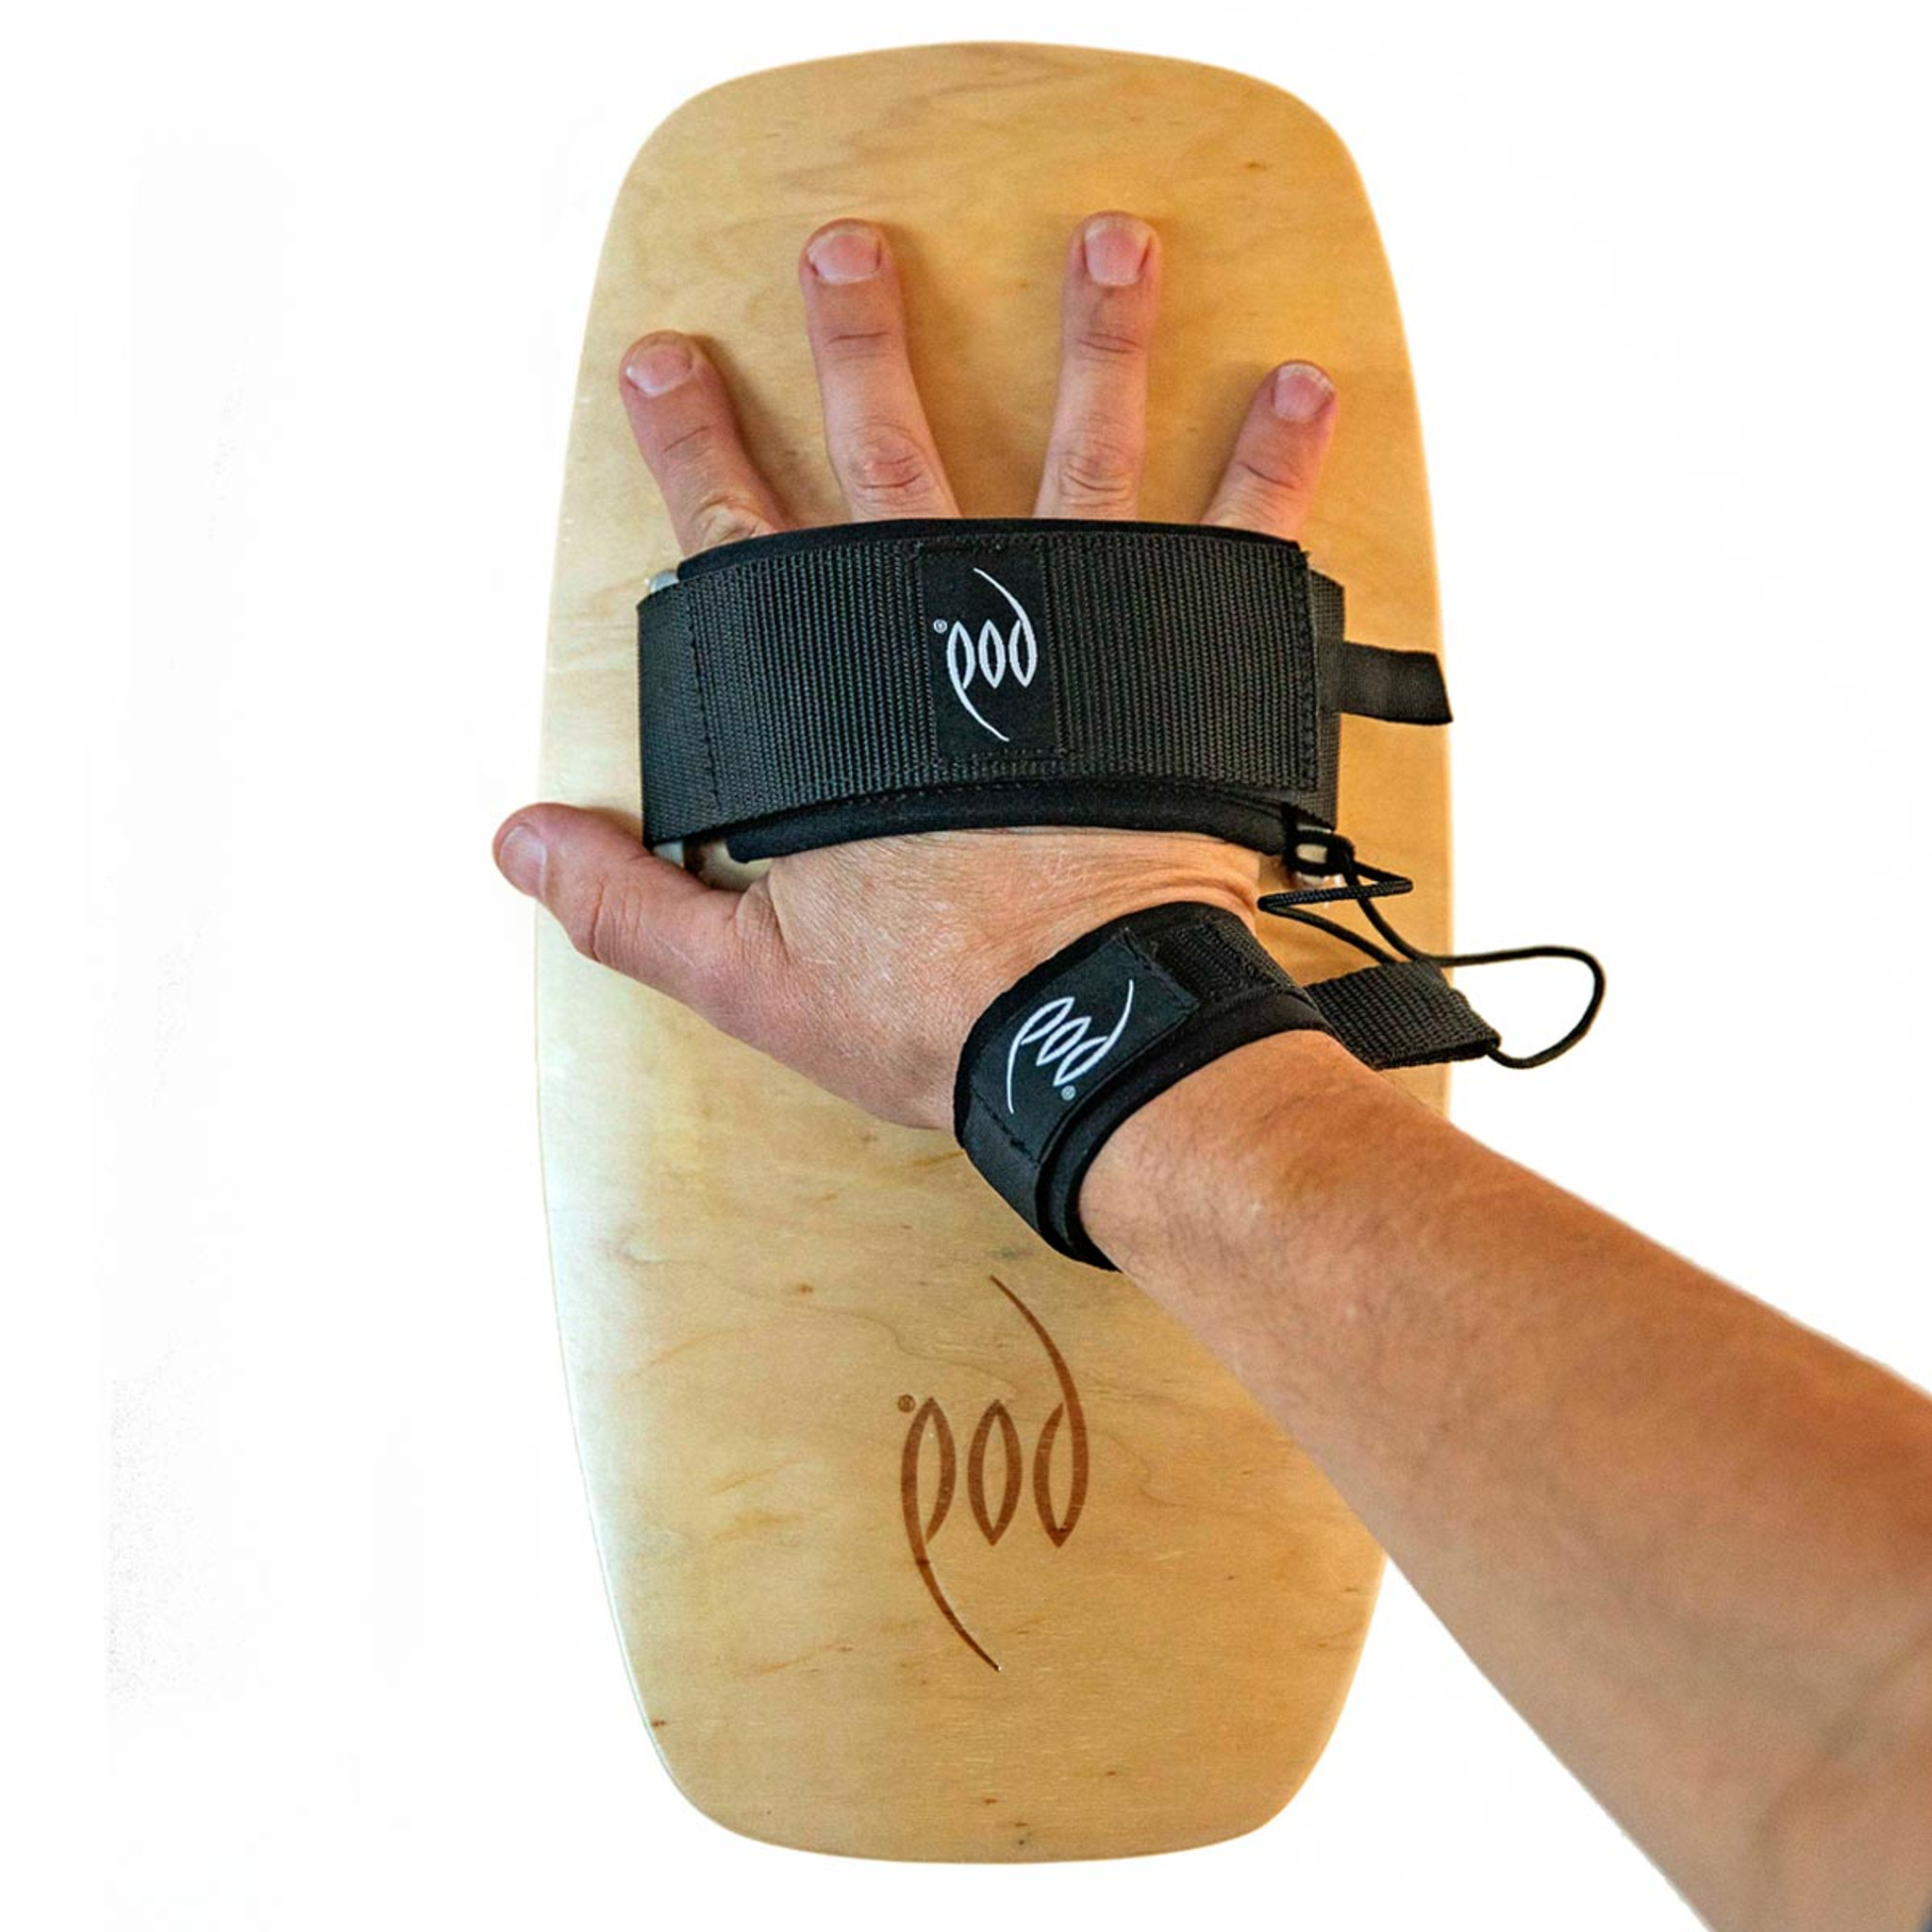 Premium Bodysurfing Tools - Wood Handboard PF3 Socks Savers